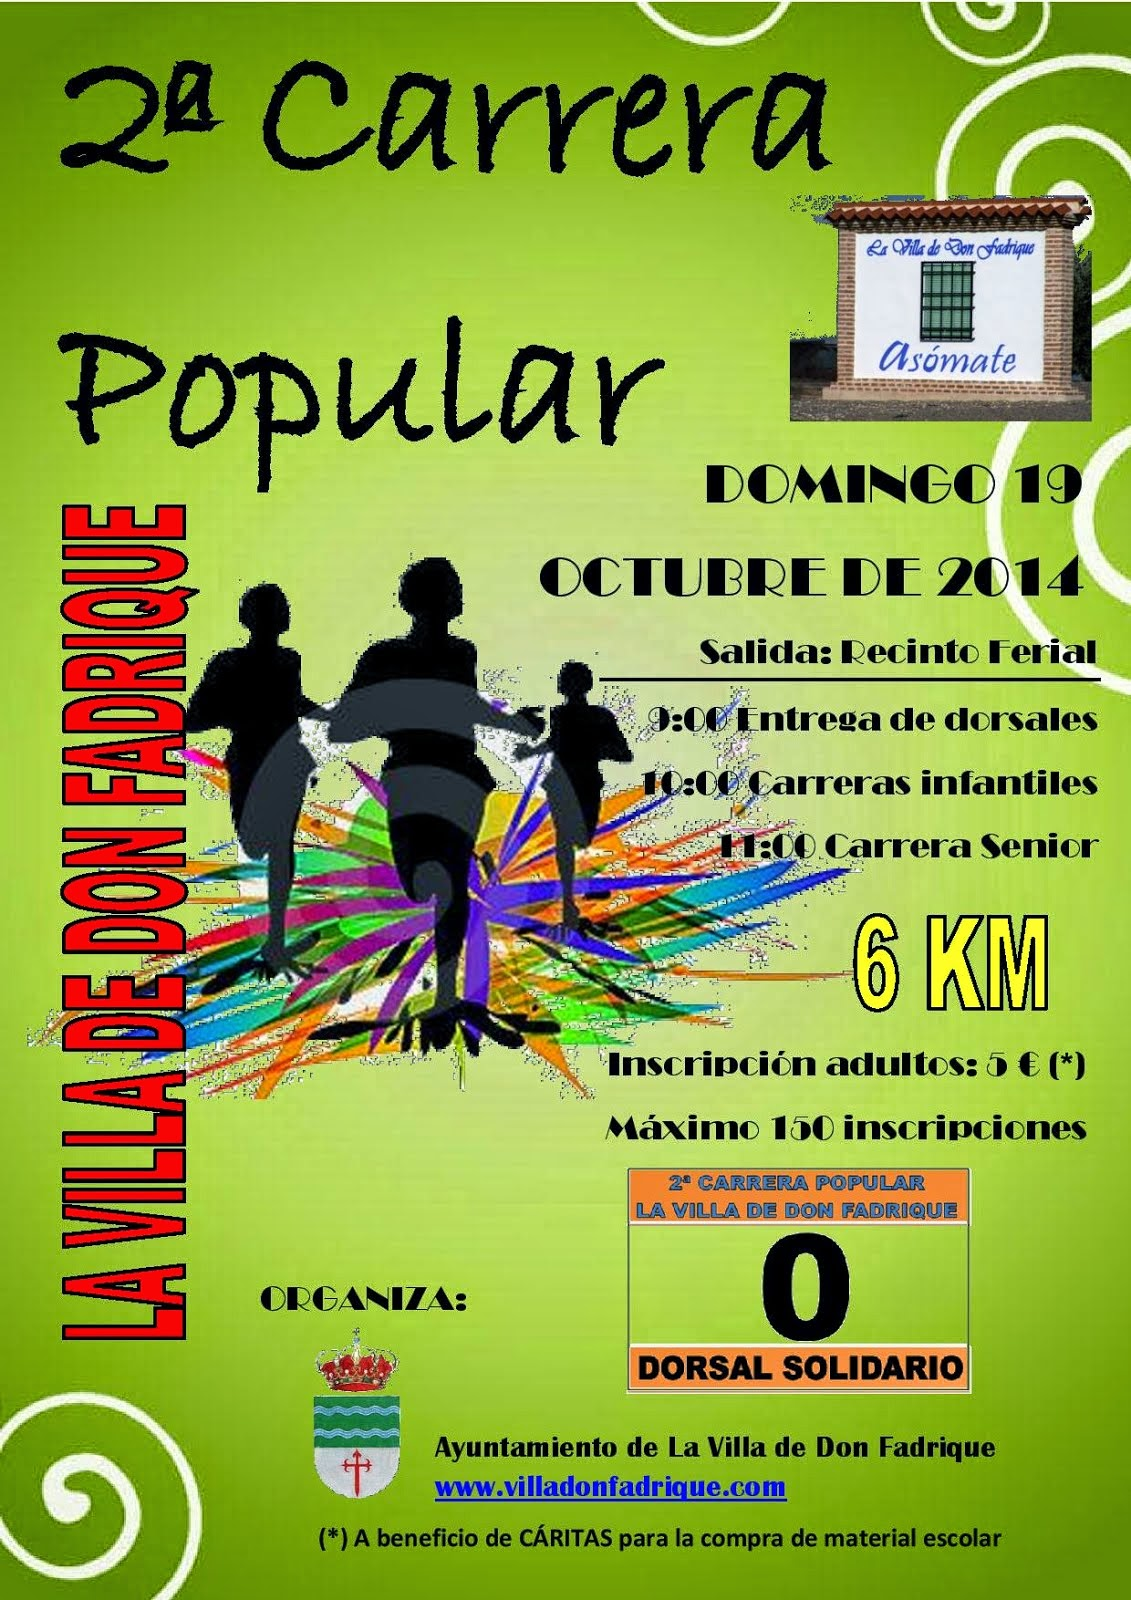 2ª Carrera Popular de La Villa de Don Fadrique